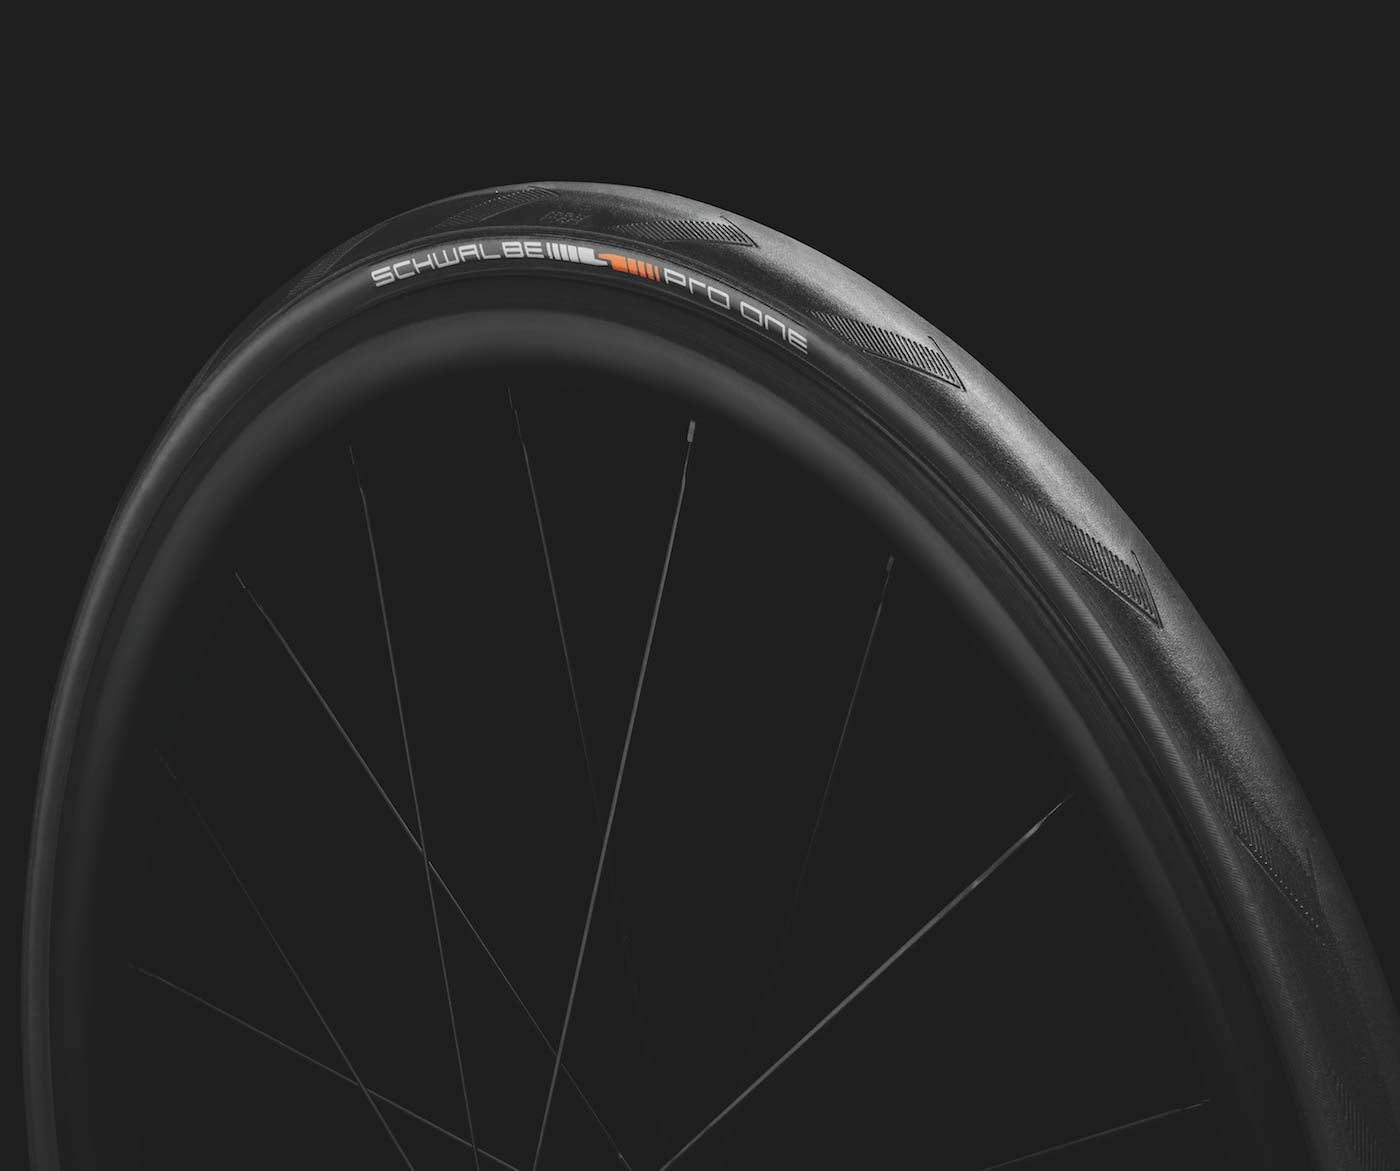 Tubeless Gets Simple: The Schwalbe Pro One Tubeless Easy